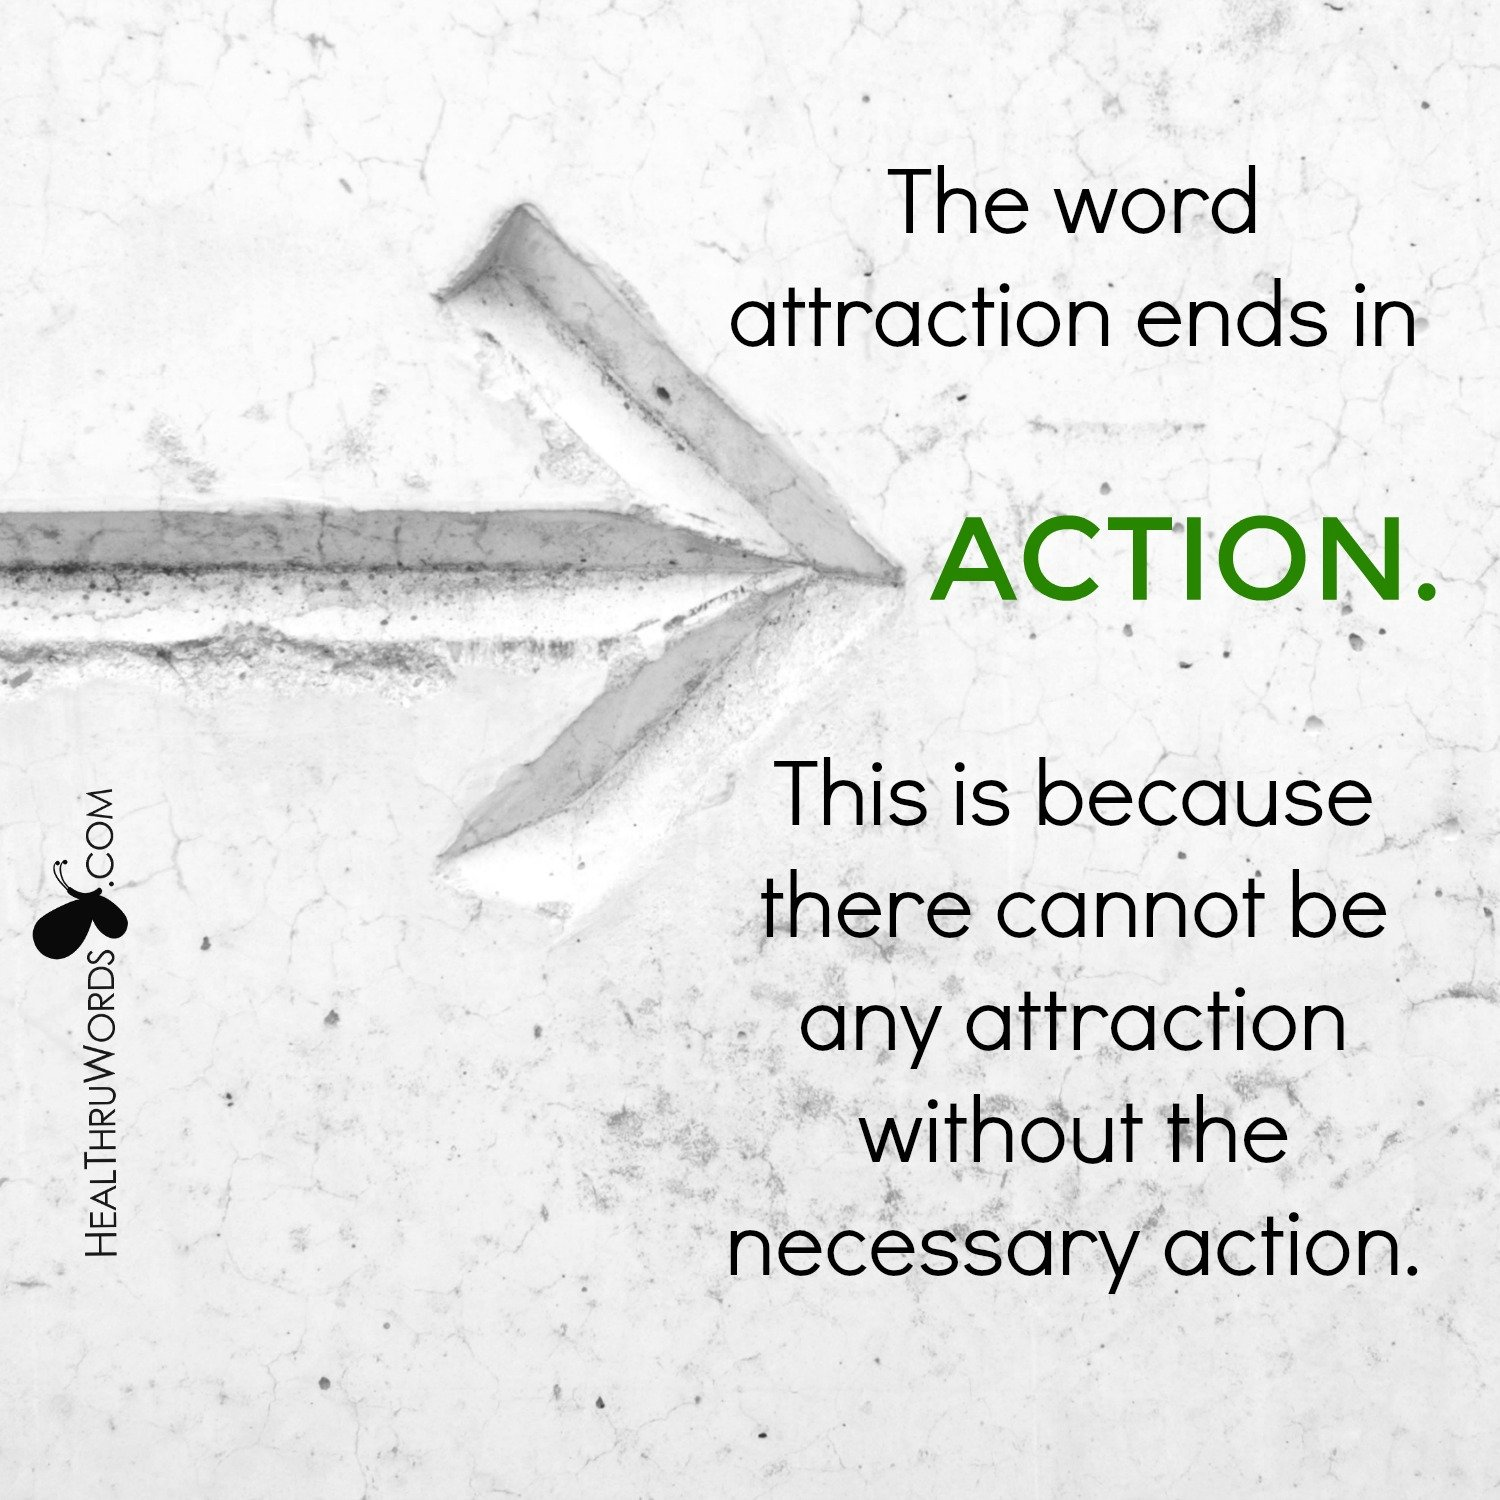 Inspirational Image: Action in Attraction